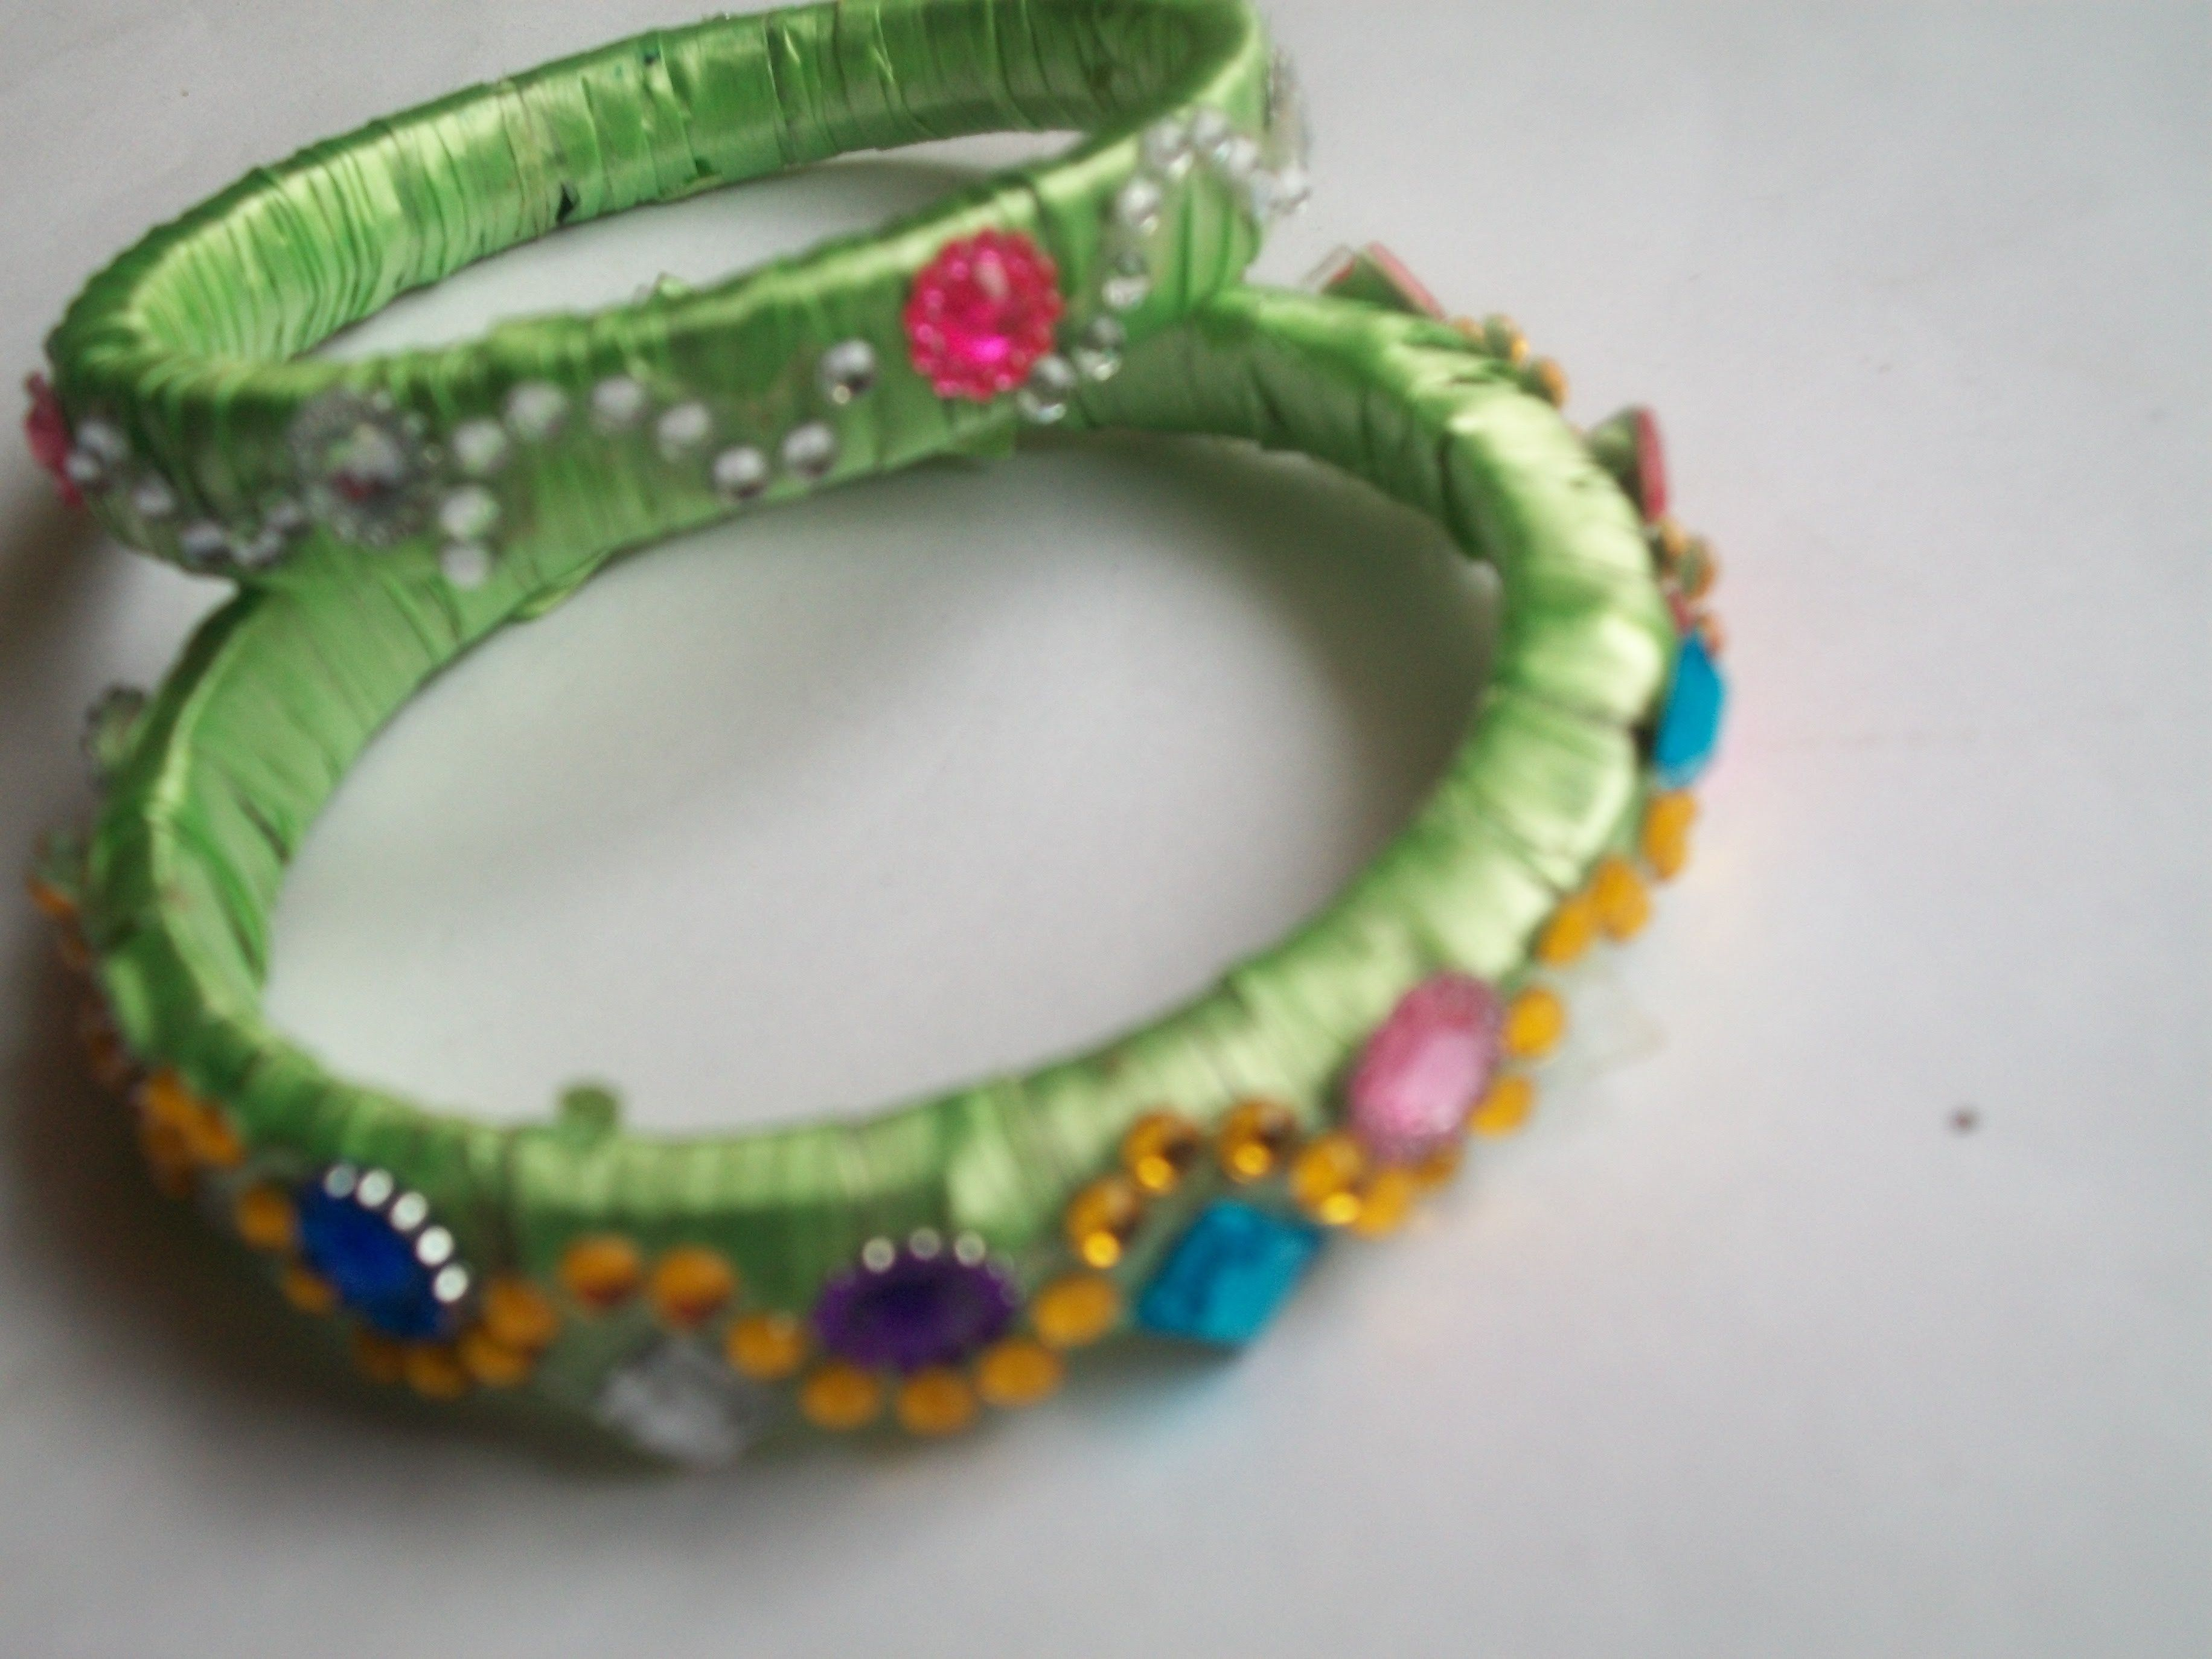 How to make designer jewellery bangles with plastic ribbon and